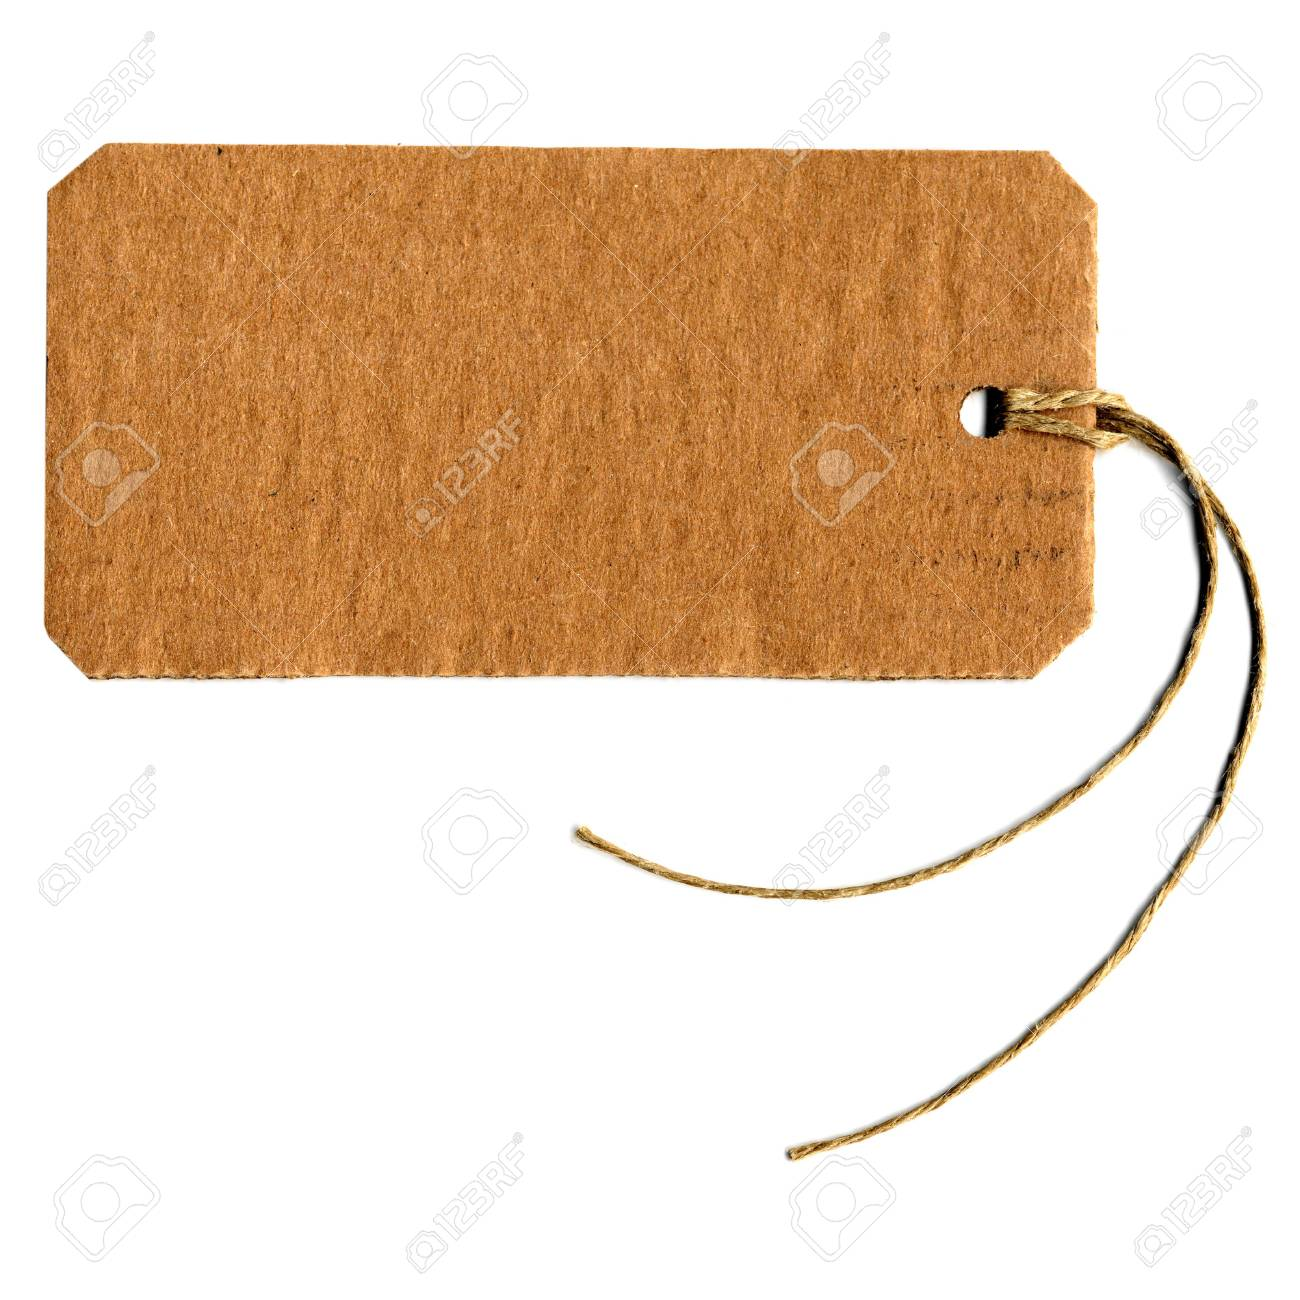 Price tag or address label with string Stock Photo - 5440605